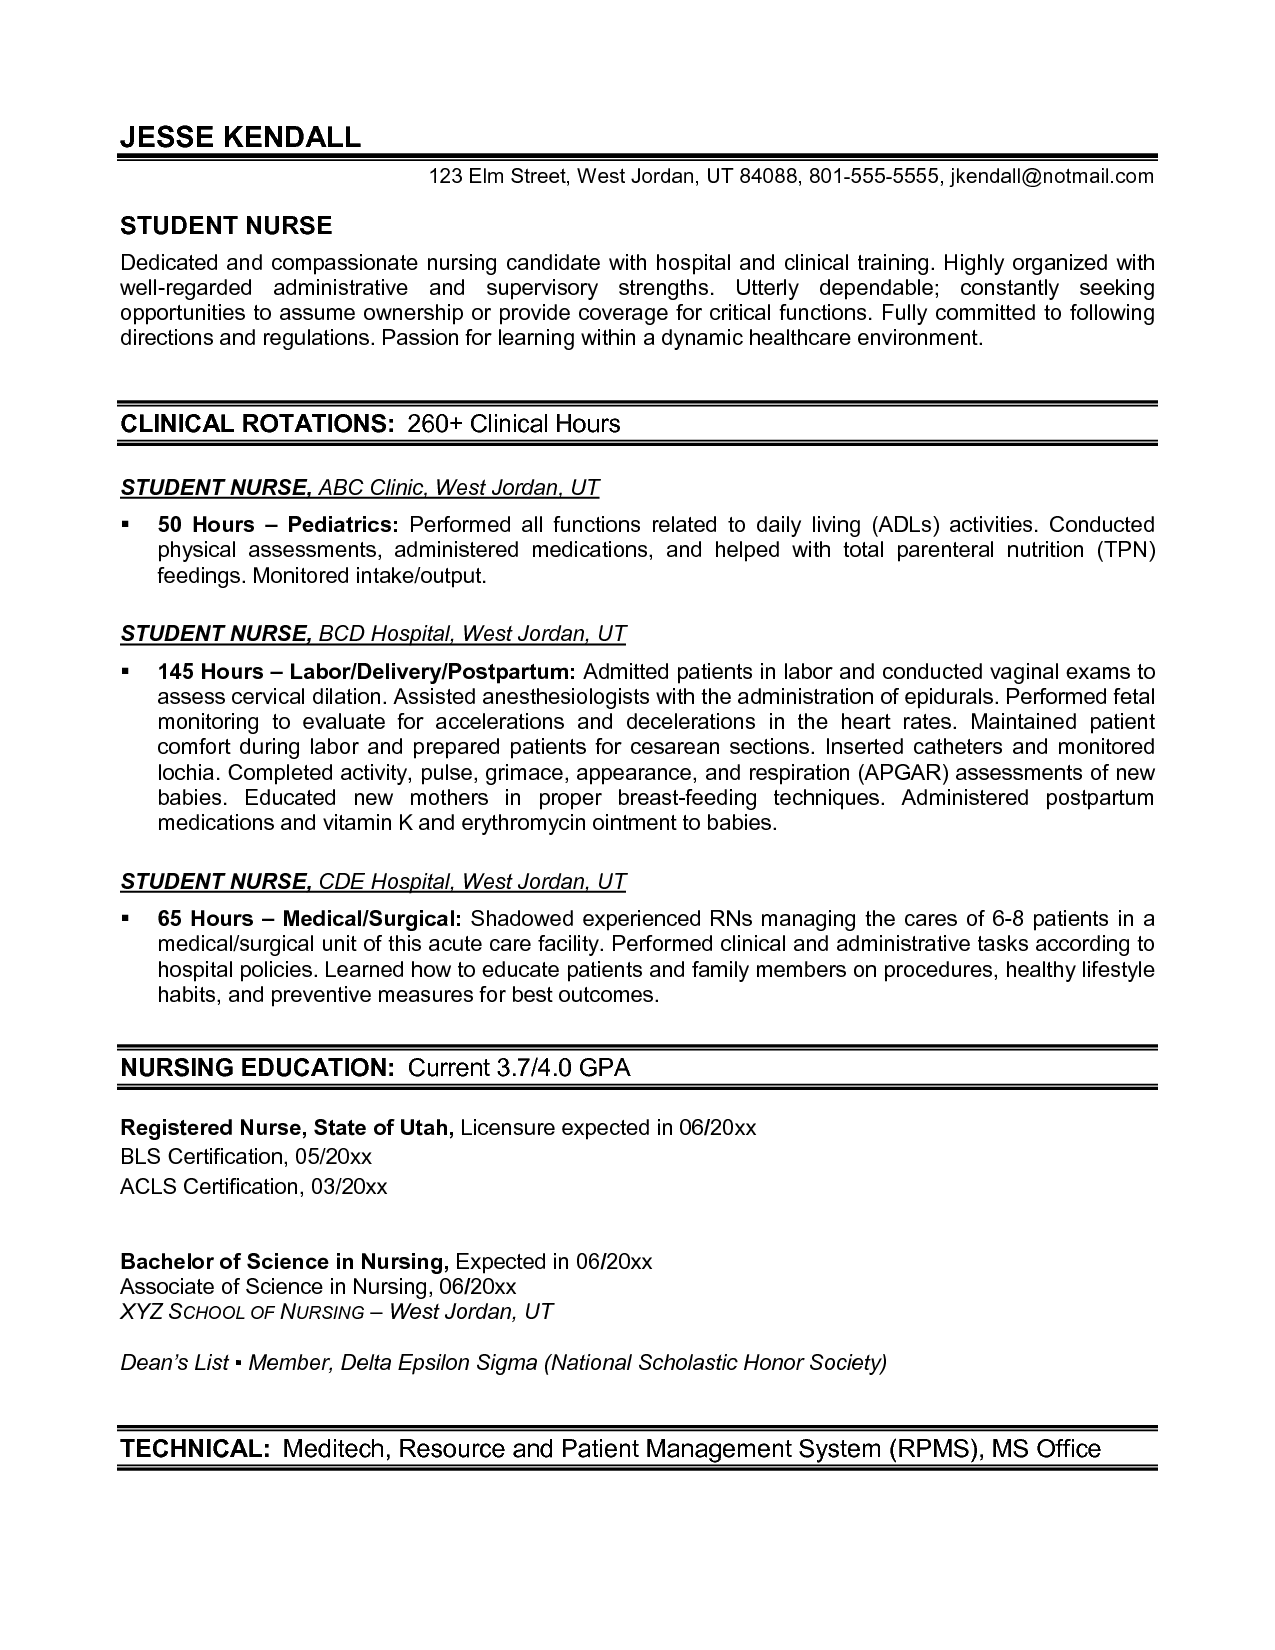 Resume template nursing nursing pinterest nursing resume nurse educator resume resume lpn nursing home rn resume example resume cv cover letter madrichimfo Choice Image